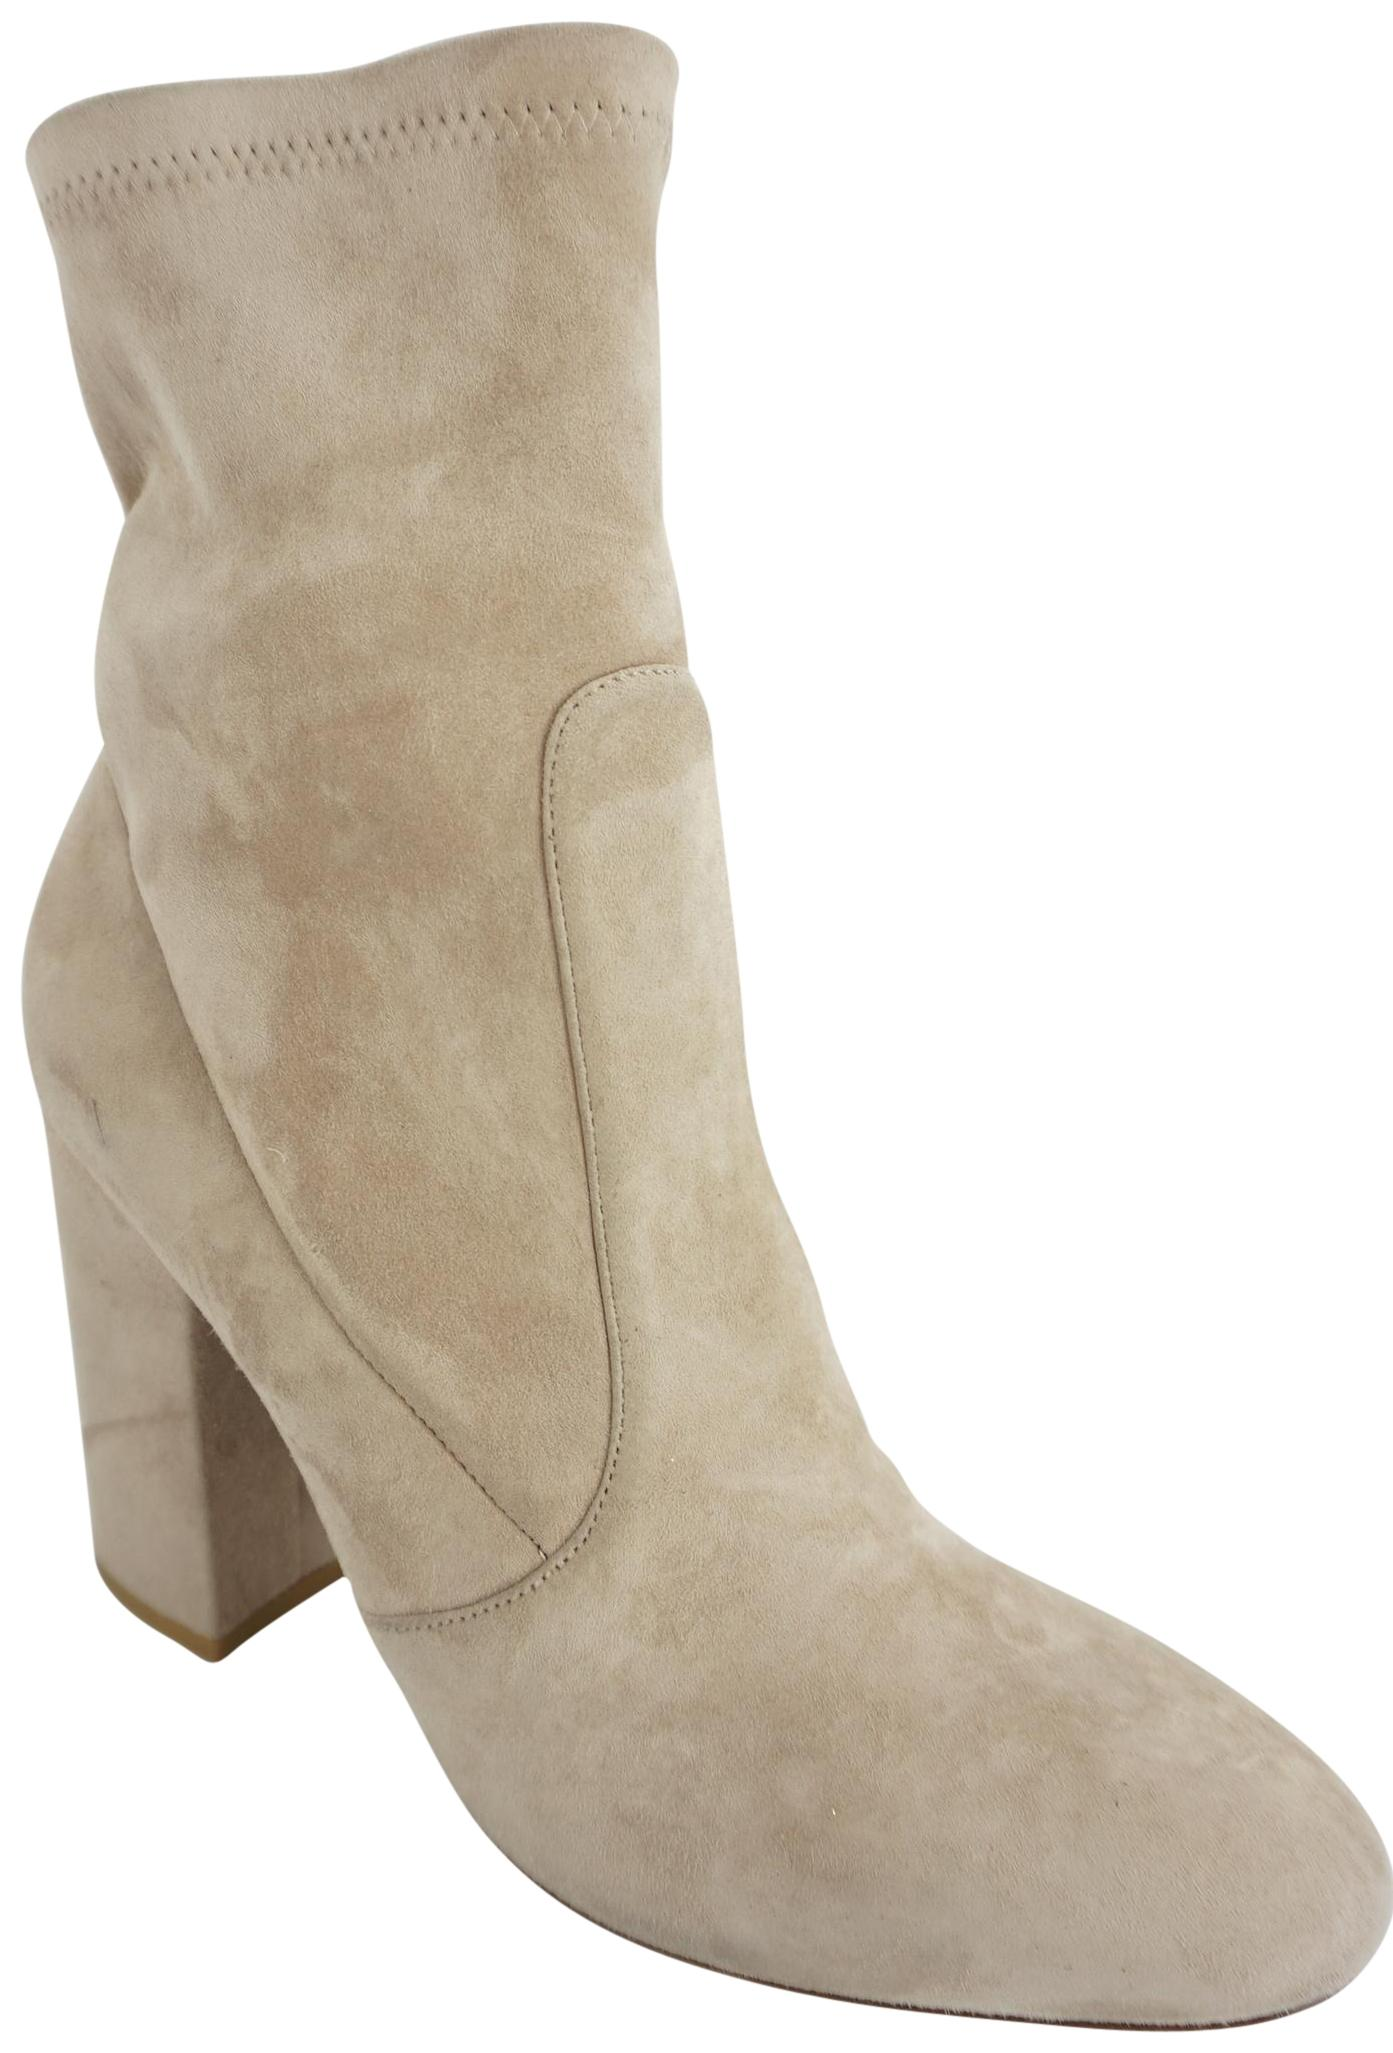 Valentino Beige Poudre Suede Stretch Block Heel Ankle Boots/Booties Size EU 38 (Approx. US 8) Regular (M, B)